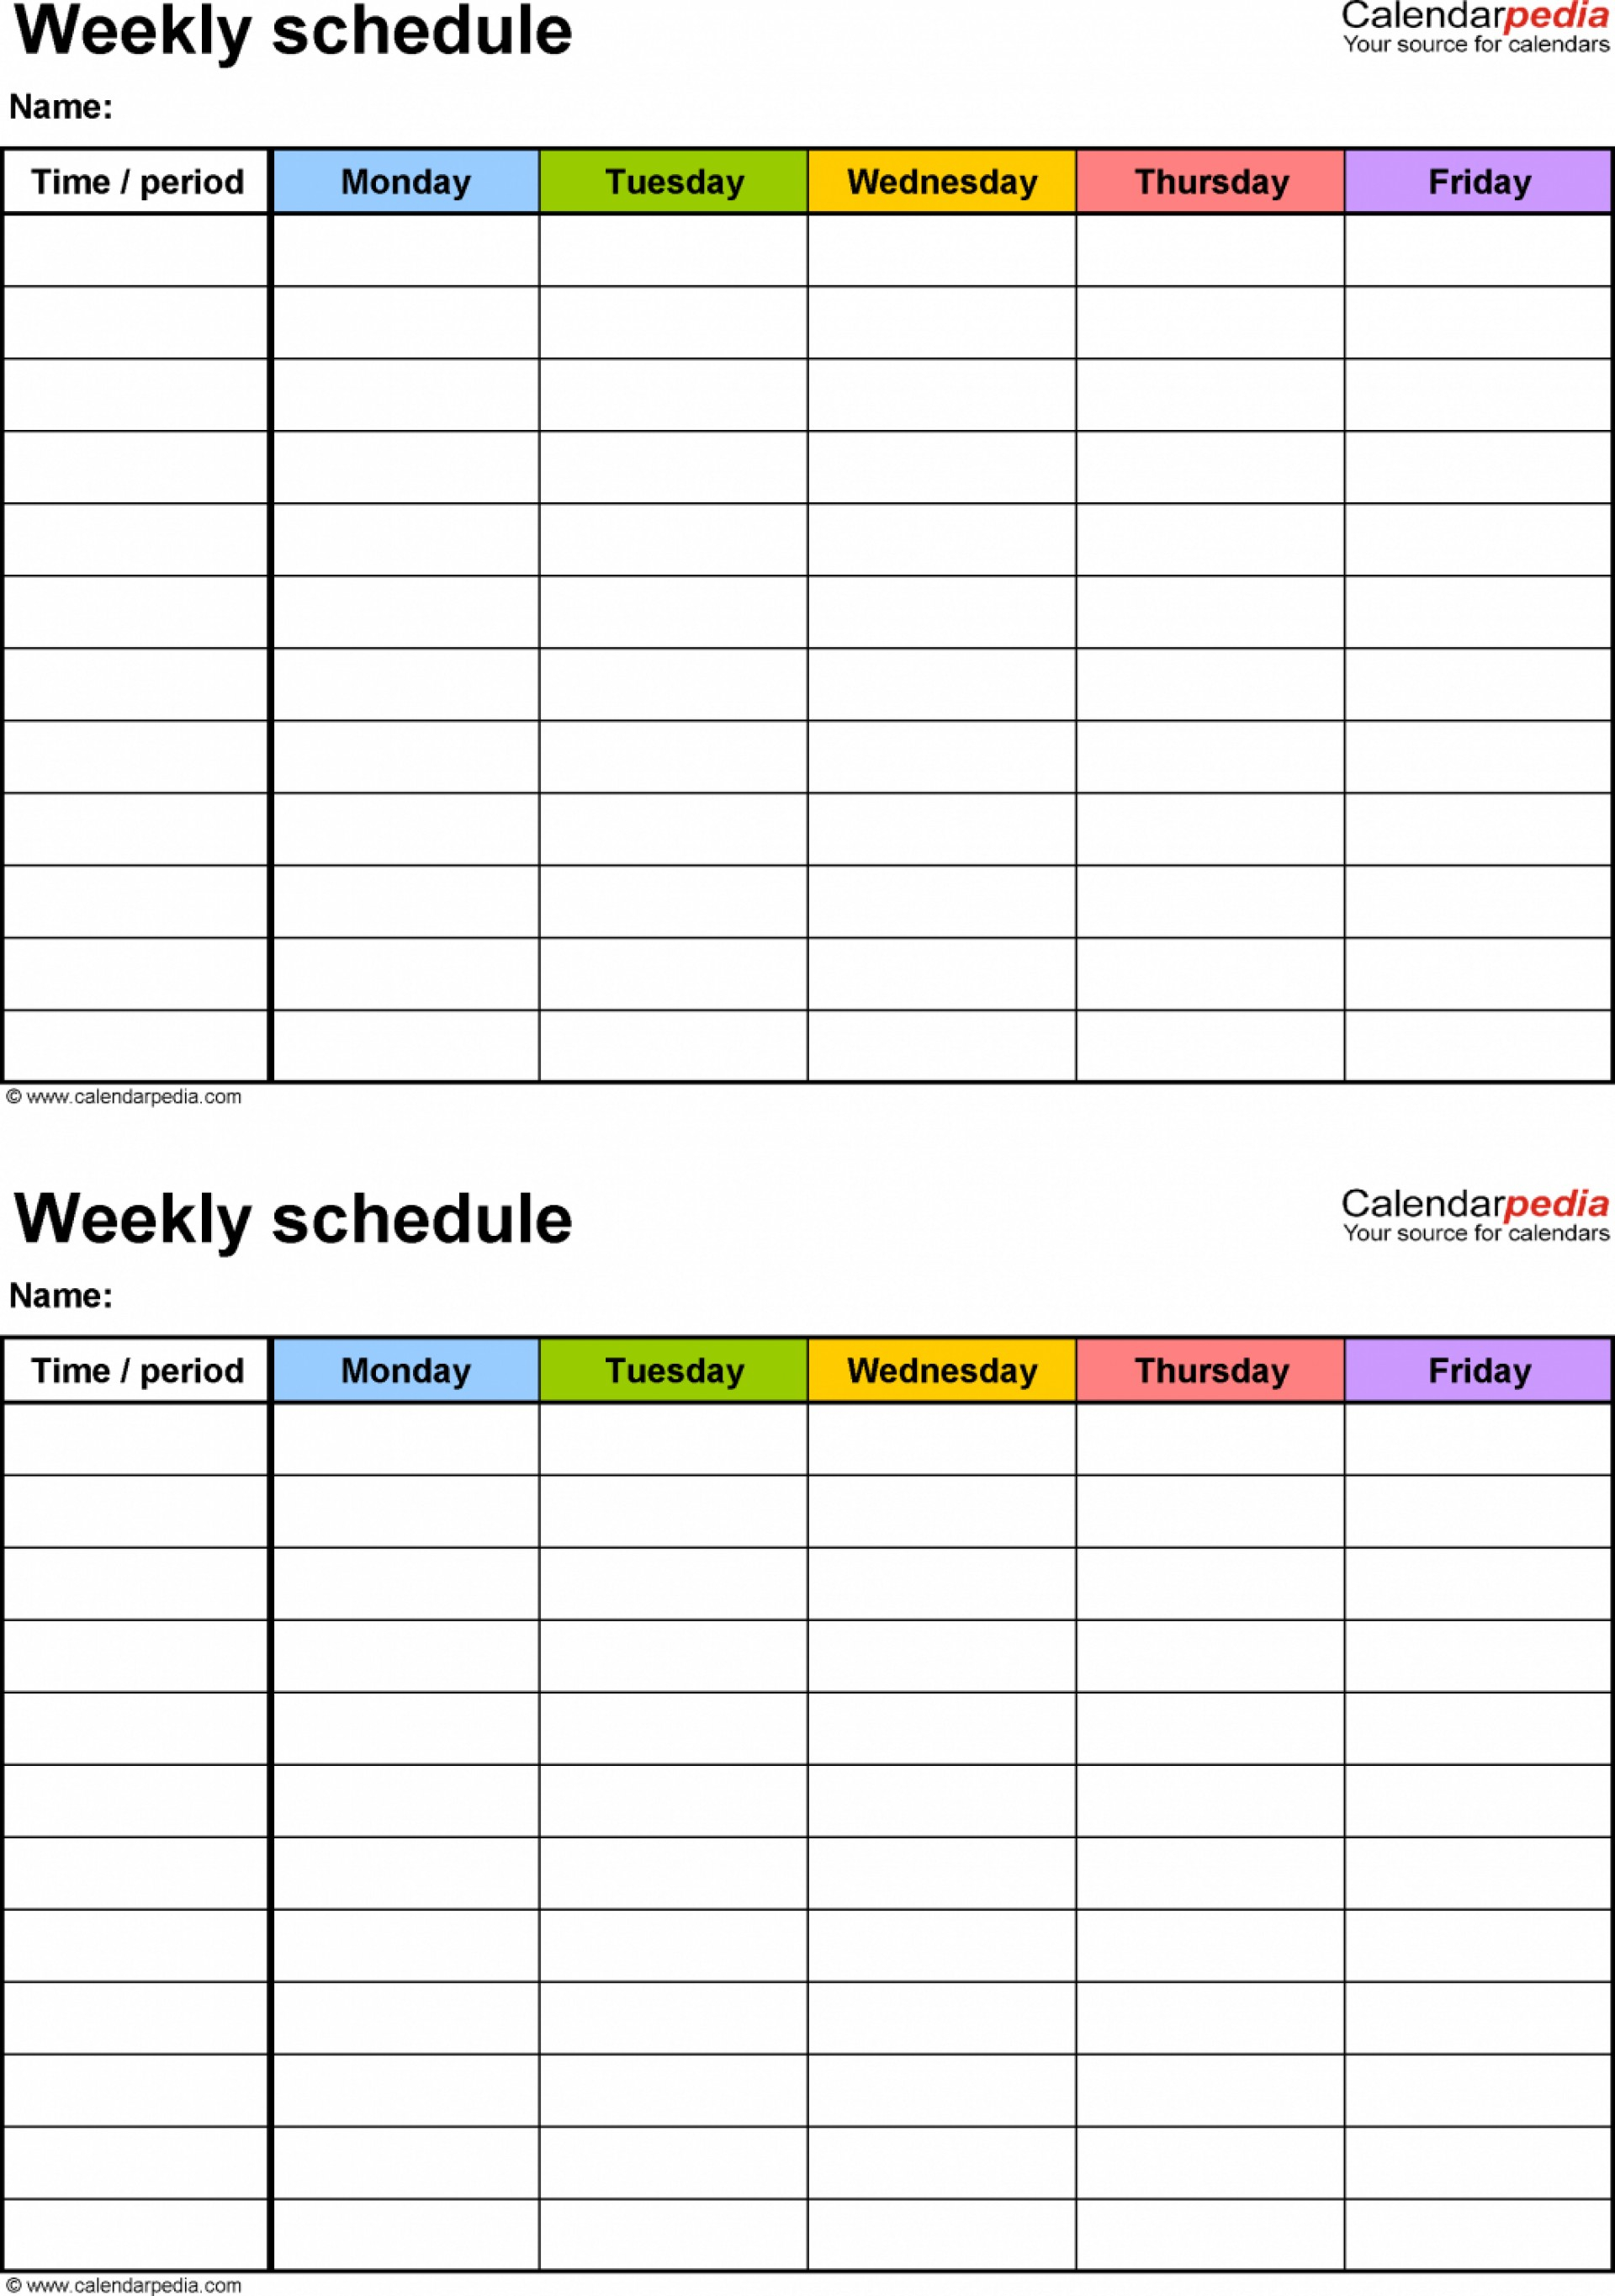 029 Daily Schedule Template Excel Ideas Printableily Planner inside Time And Action Calendar Excel Template